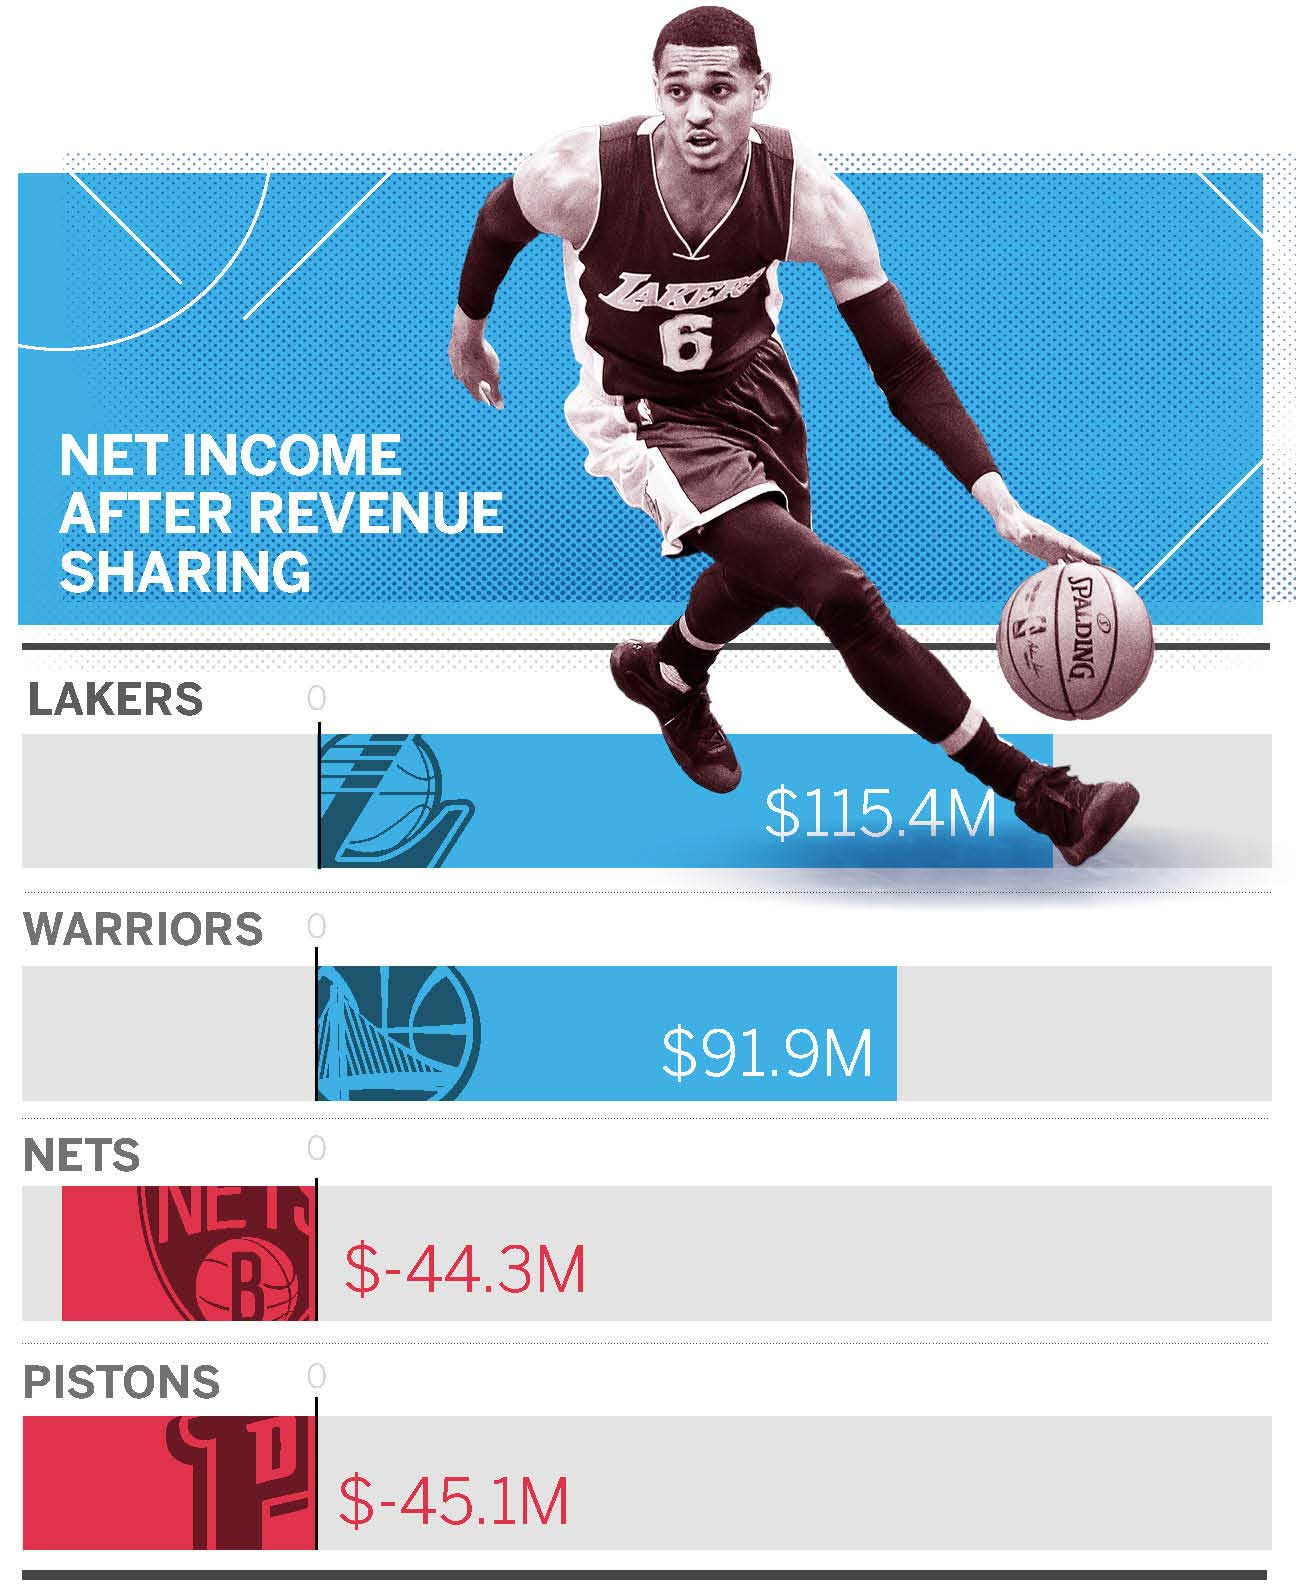 espn.com - Brian Windhorst - What happens when 30 NBA owners can't share $24 billion?